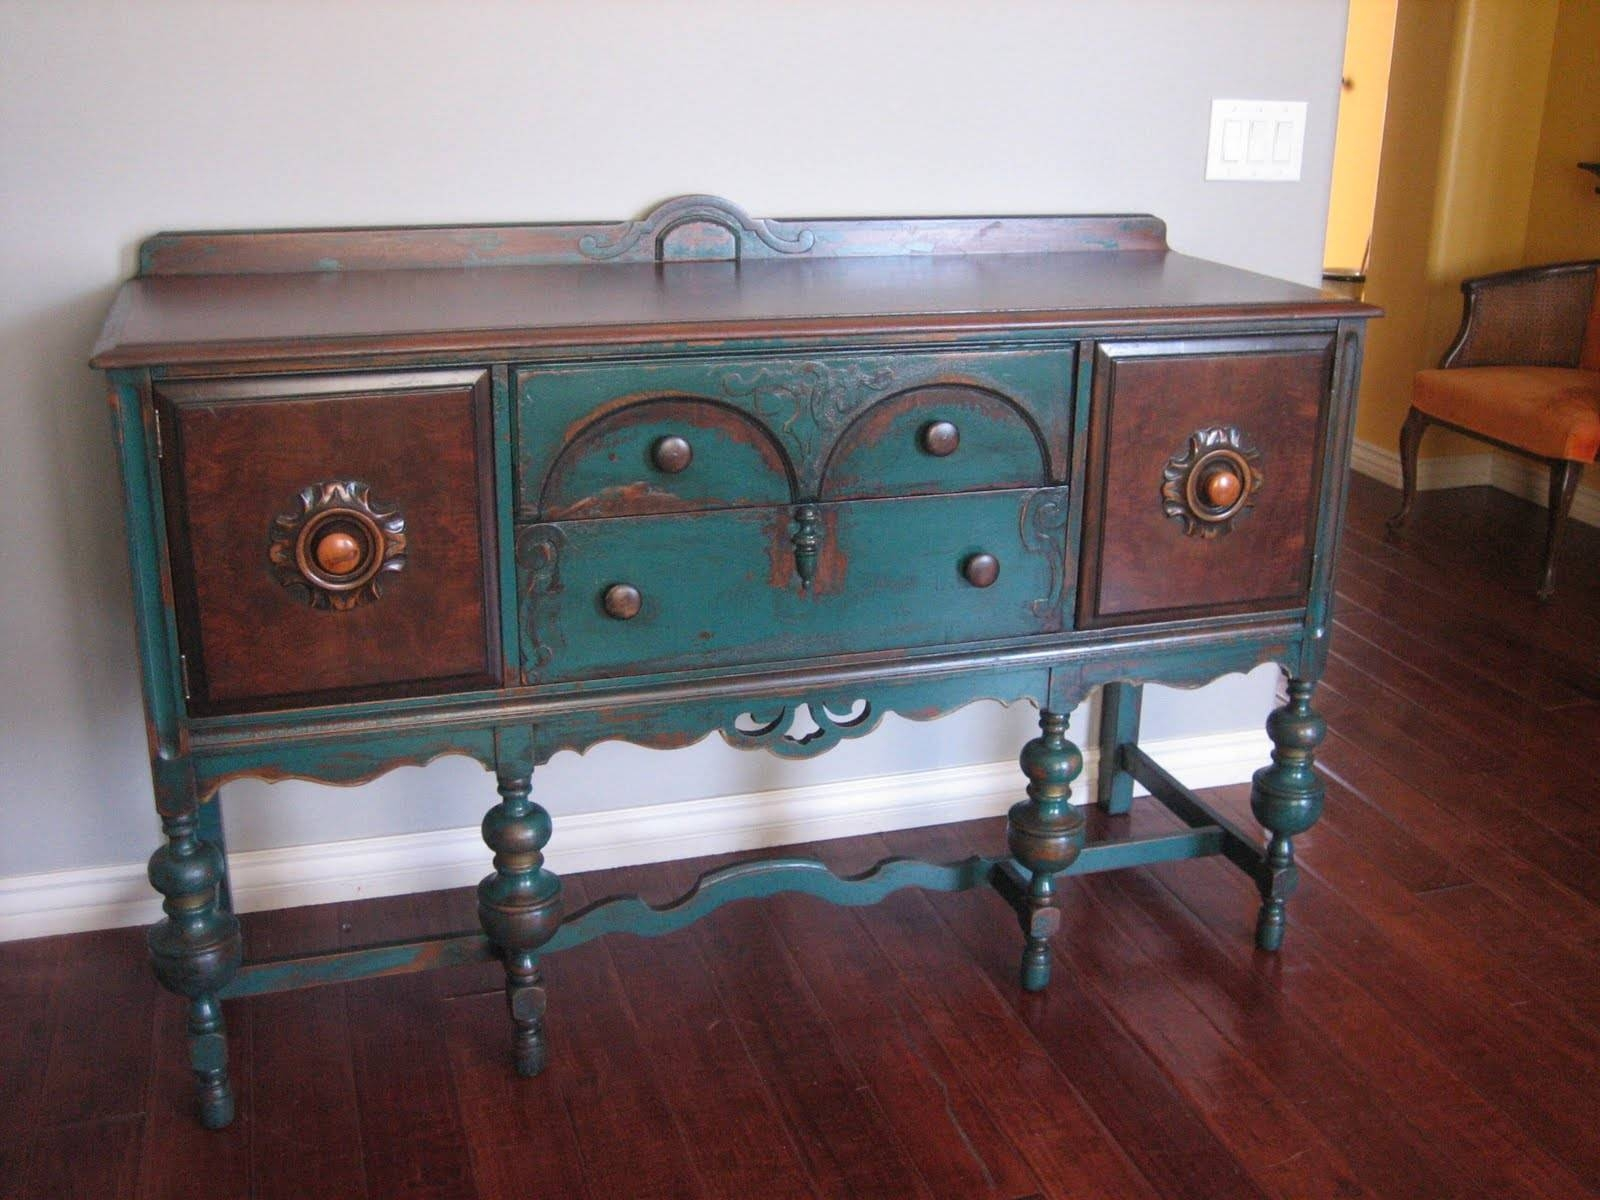 Amusing Painted Sideboards And Bffets intended for Painted Sideboards And Buffets (Image 1 of 15)